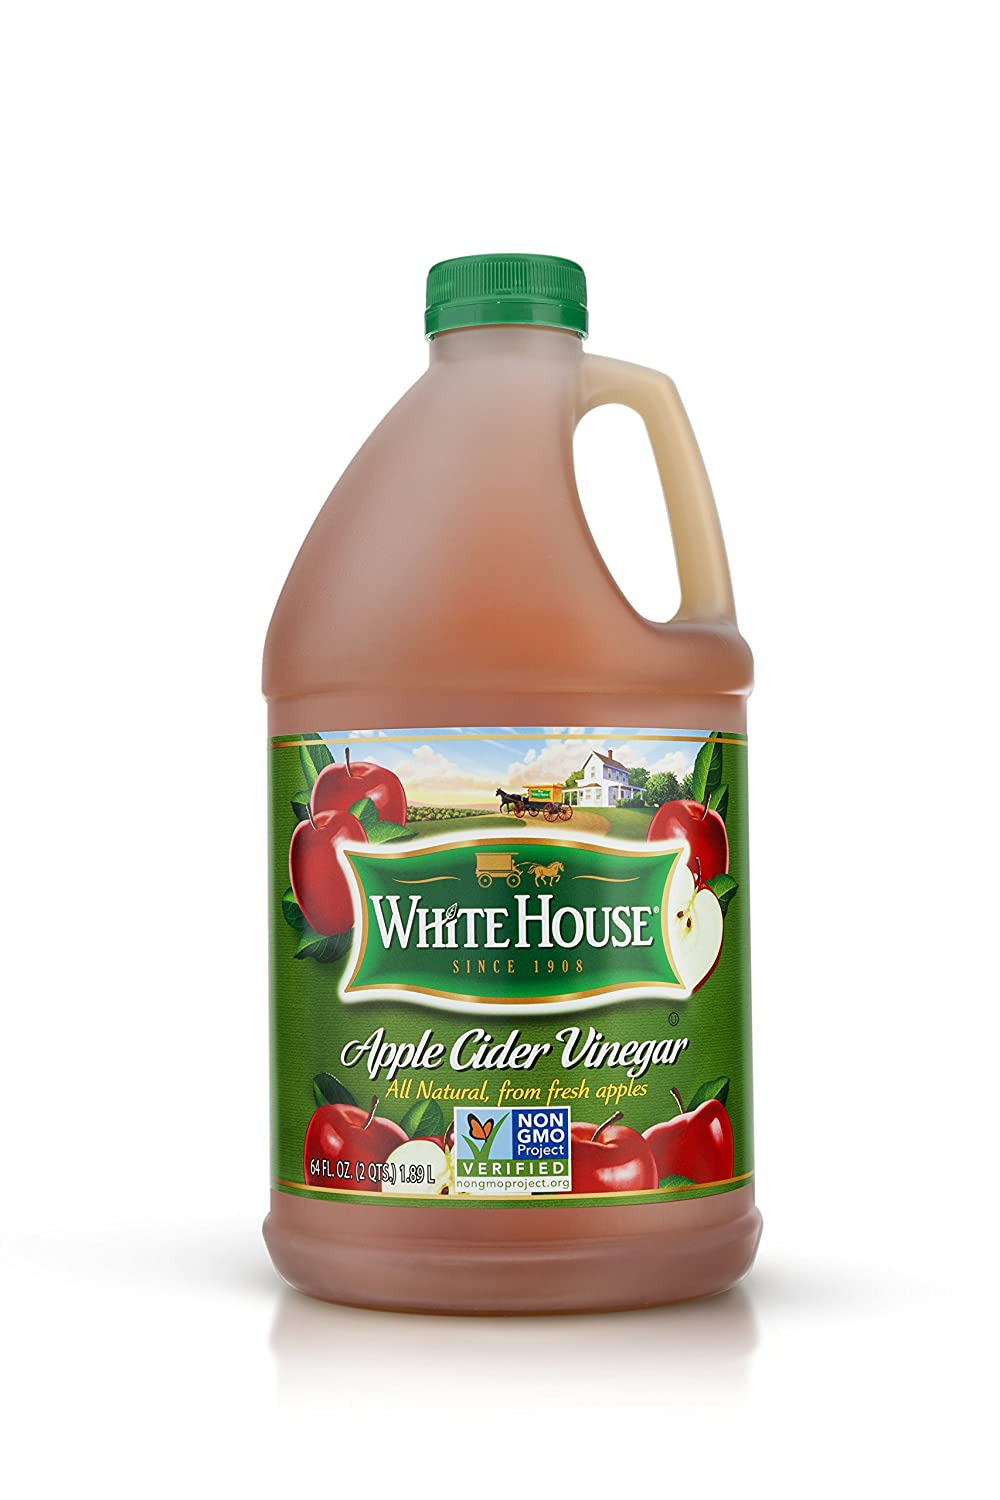 64oz White House Apple Cider Vinegar